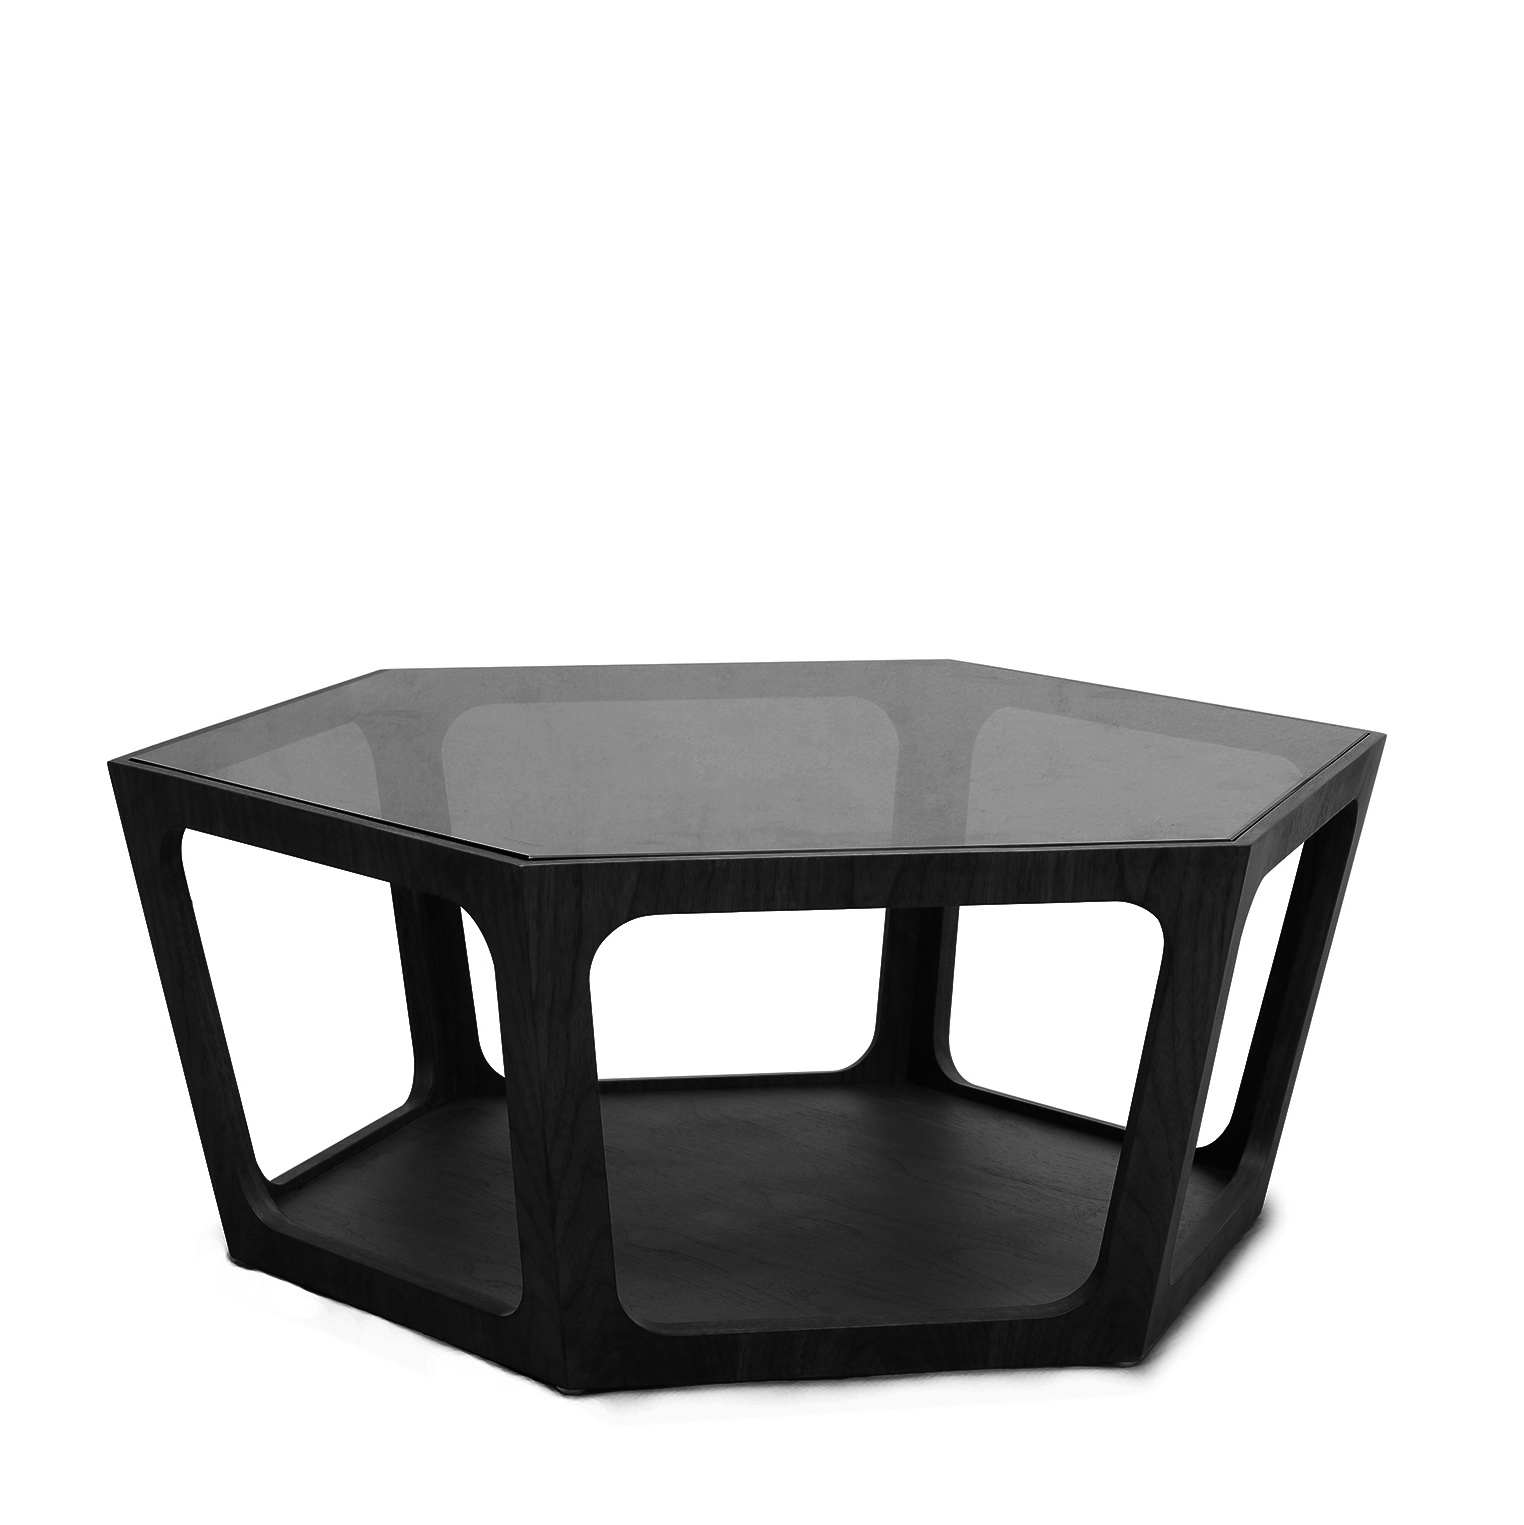 Amadeo Coffee Table Smoke Glass The Grand Interior The Grand Interior